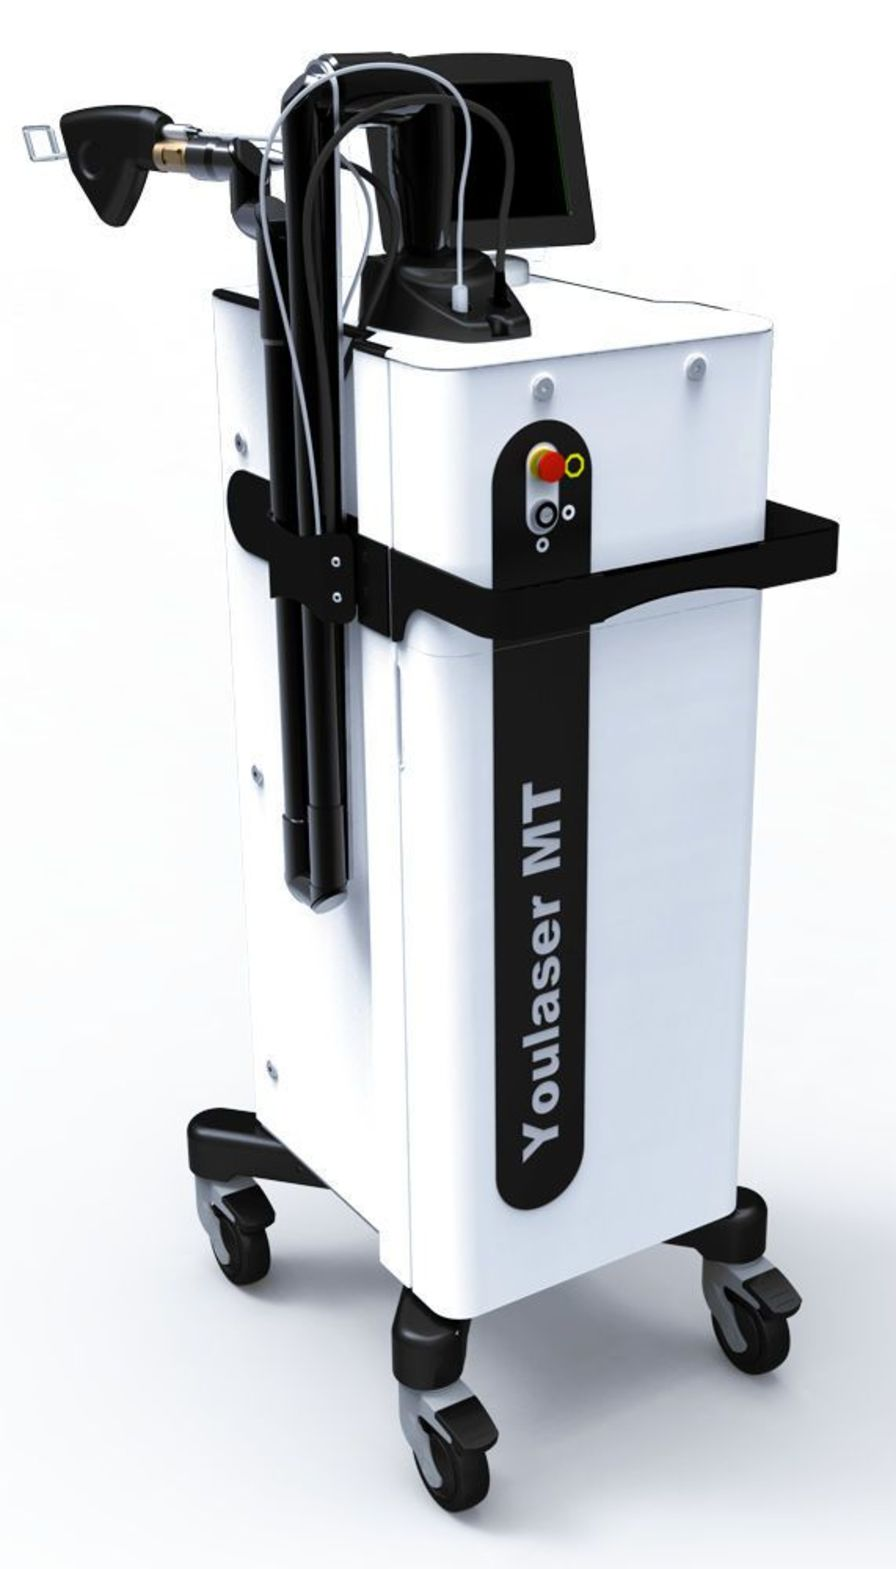 Dermatological laser / CO2 / diode / on trolley YOULASER MT 10600 nm / 1540 nm Quanta System S.p.A.